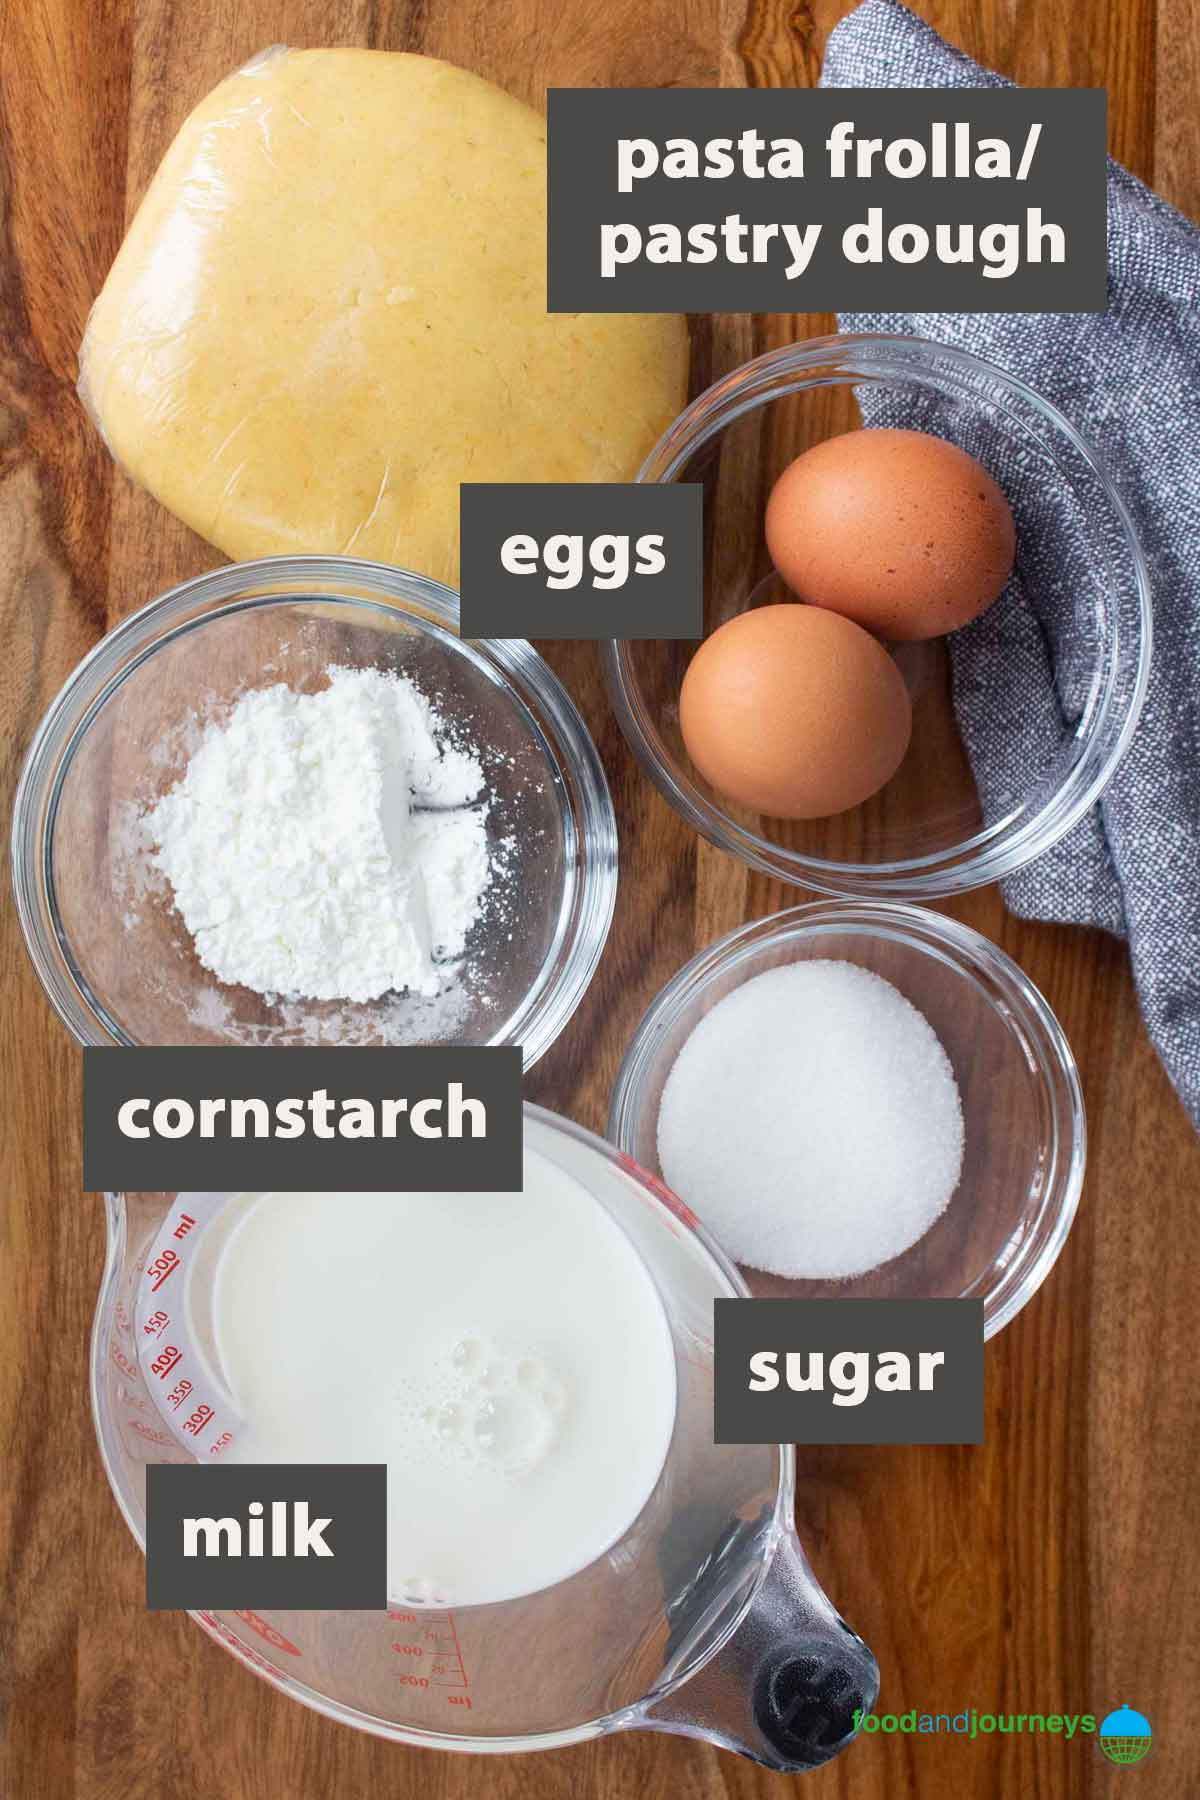 Updated image showing all the ingredients you need to make Italian Cream Filled Pastry.